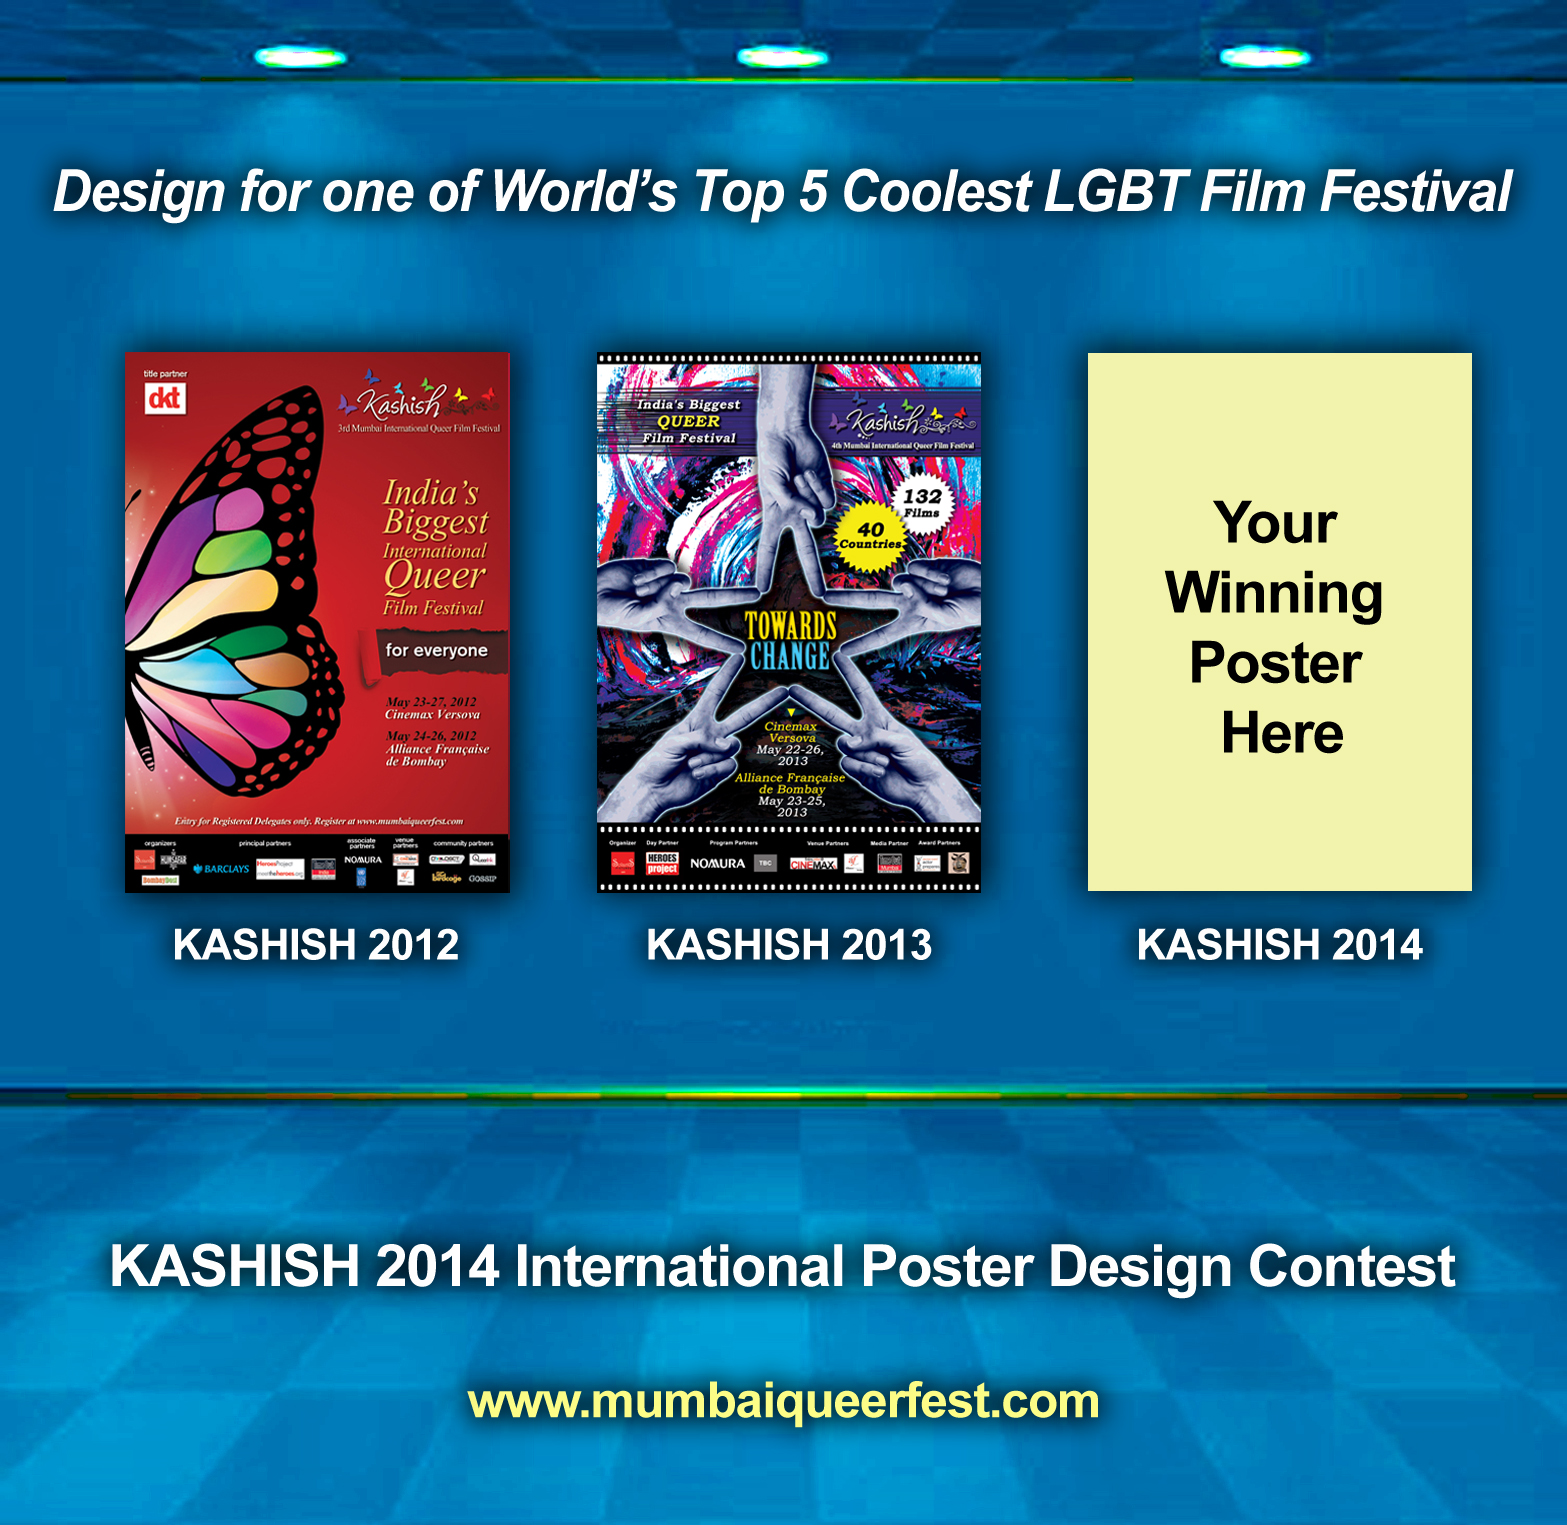 KASHISH Poster Design Contest : Call For Entries!